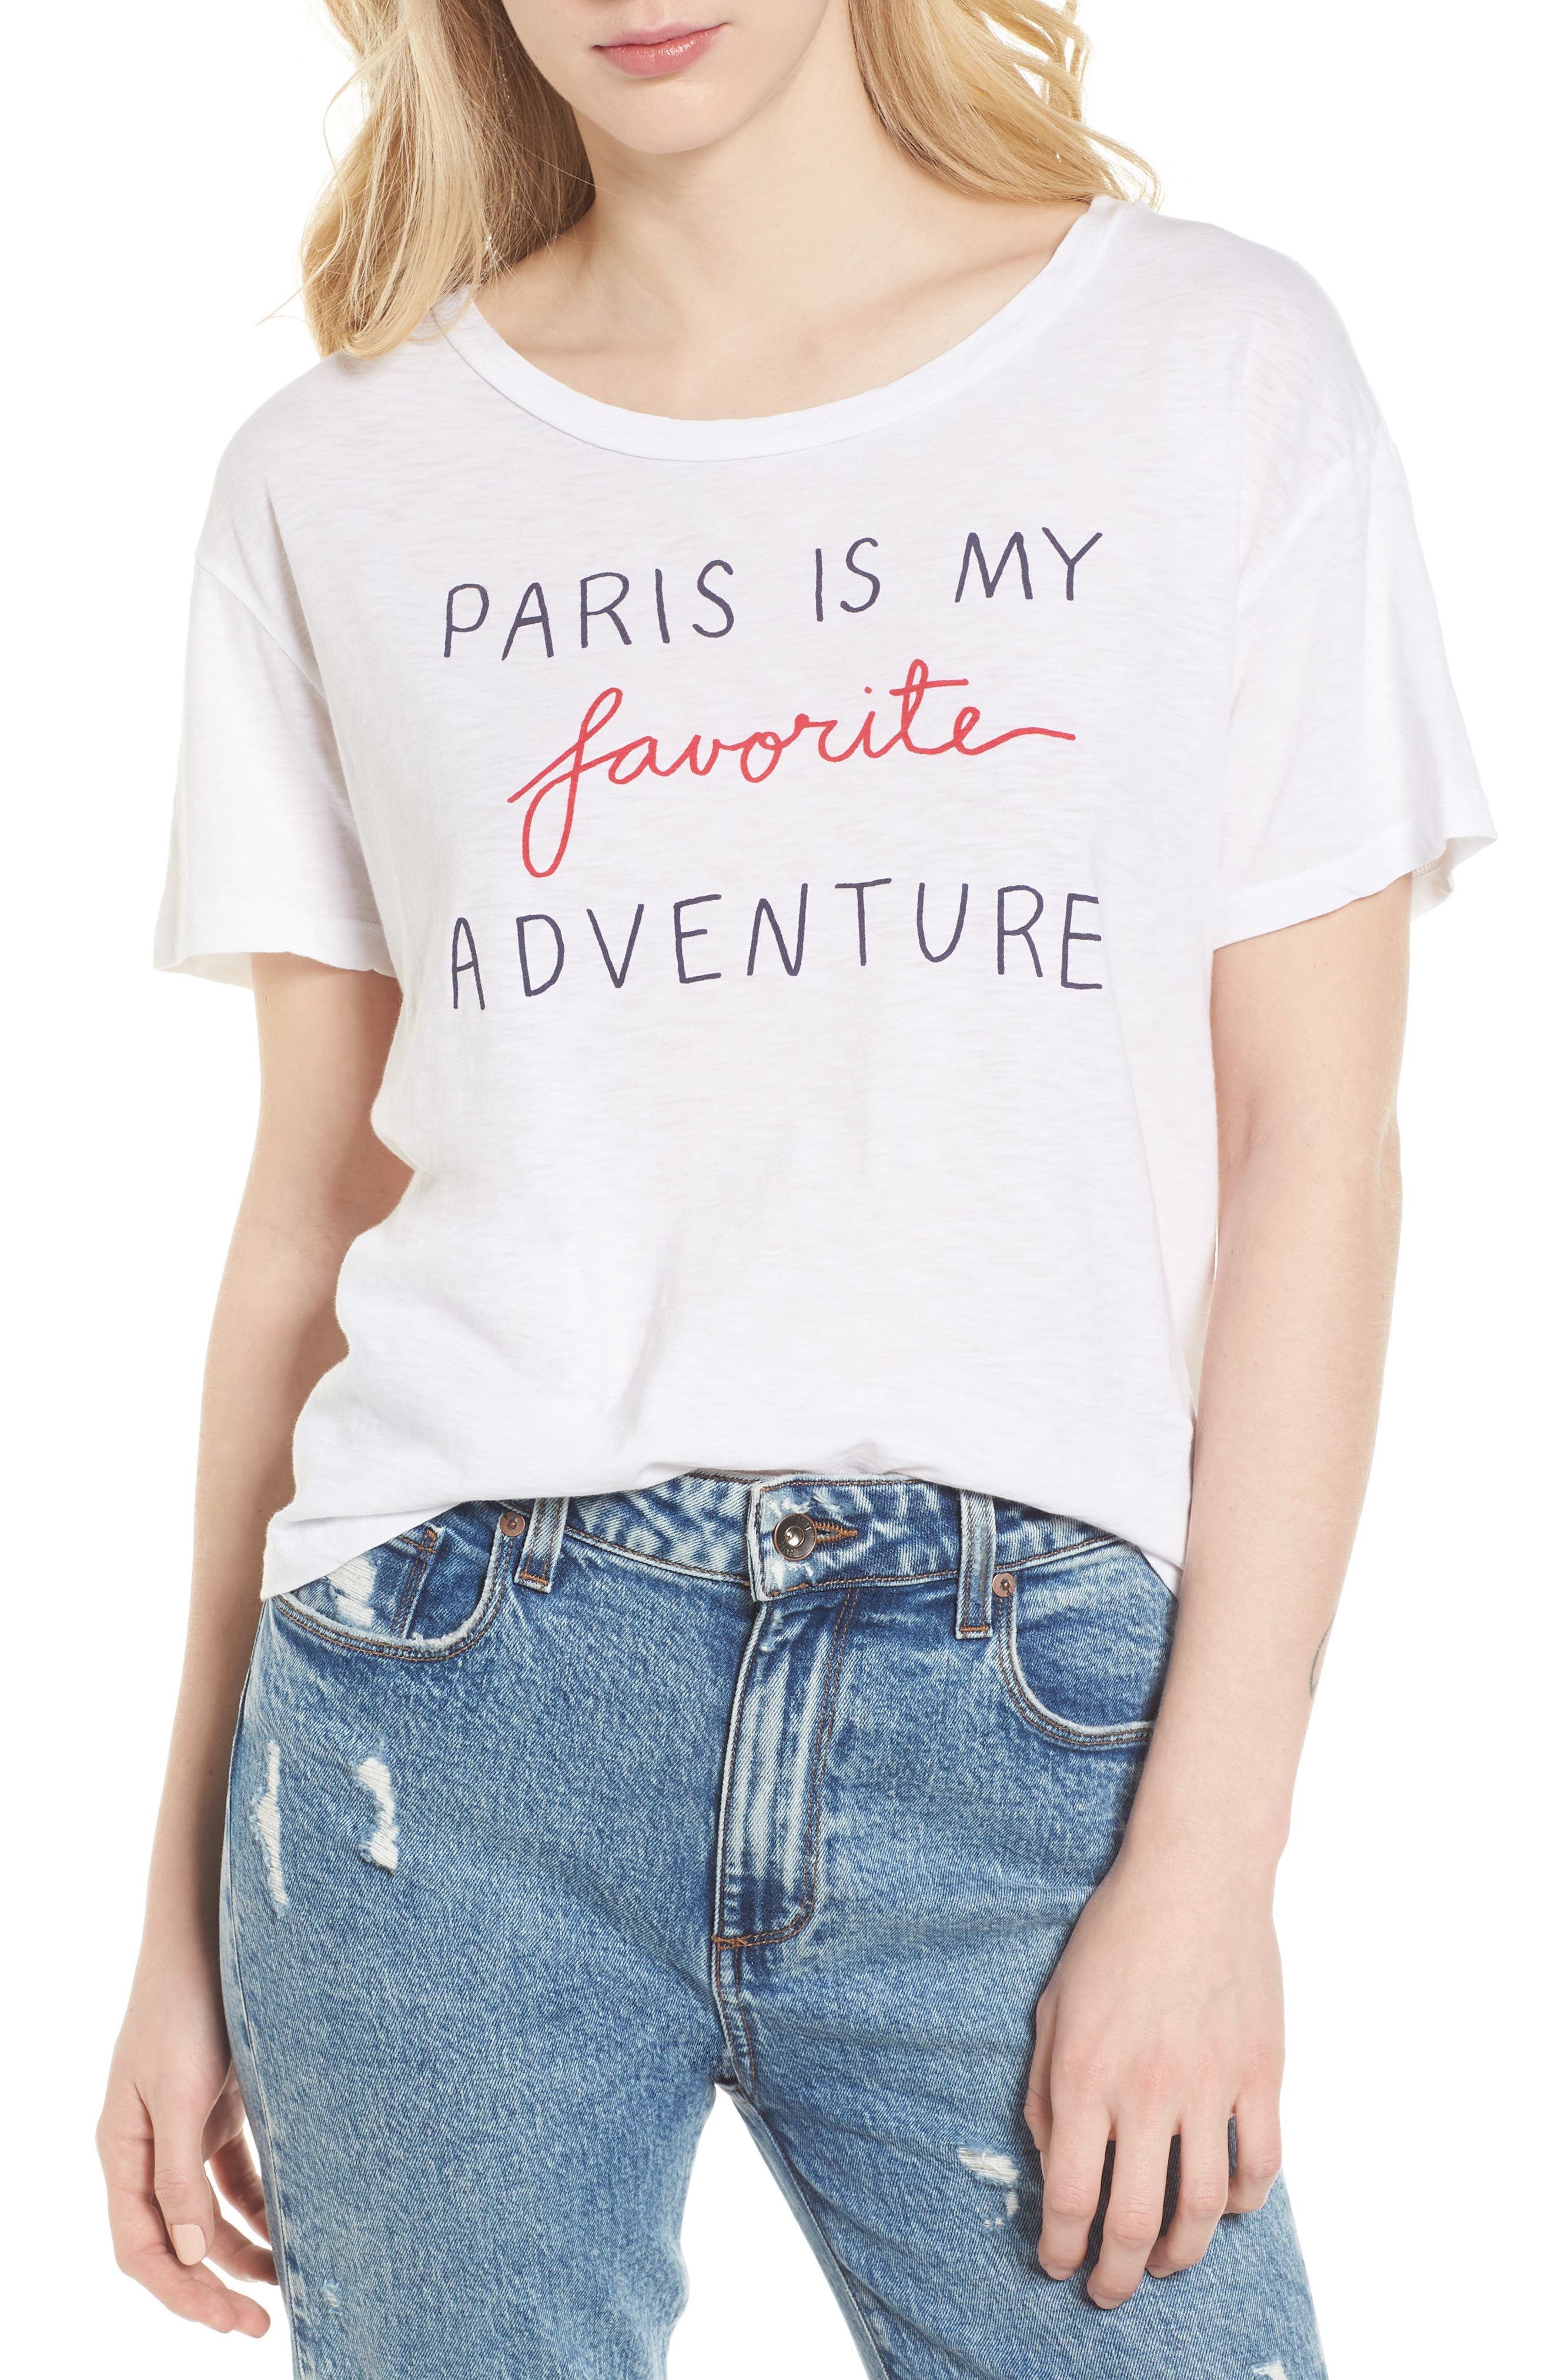 Paris Is My Favorite Adventure Tee,                         Main,                         color, White